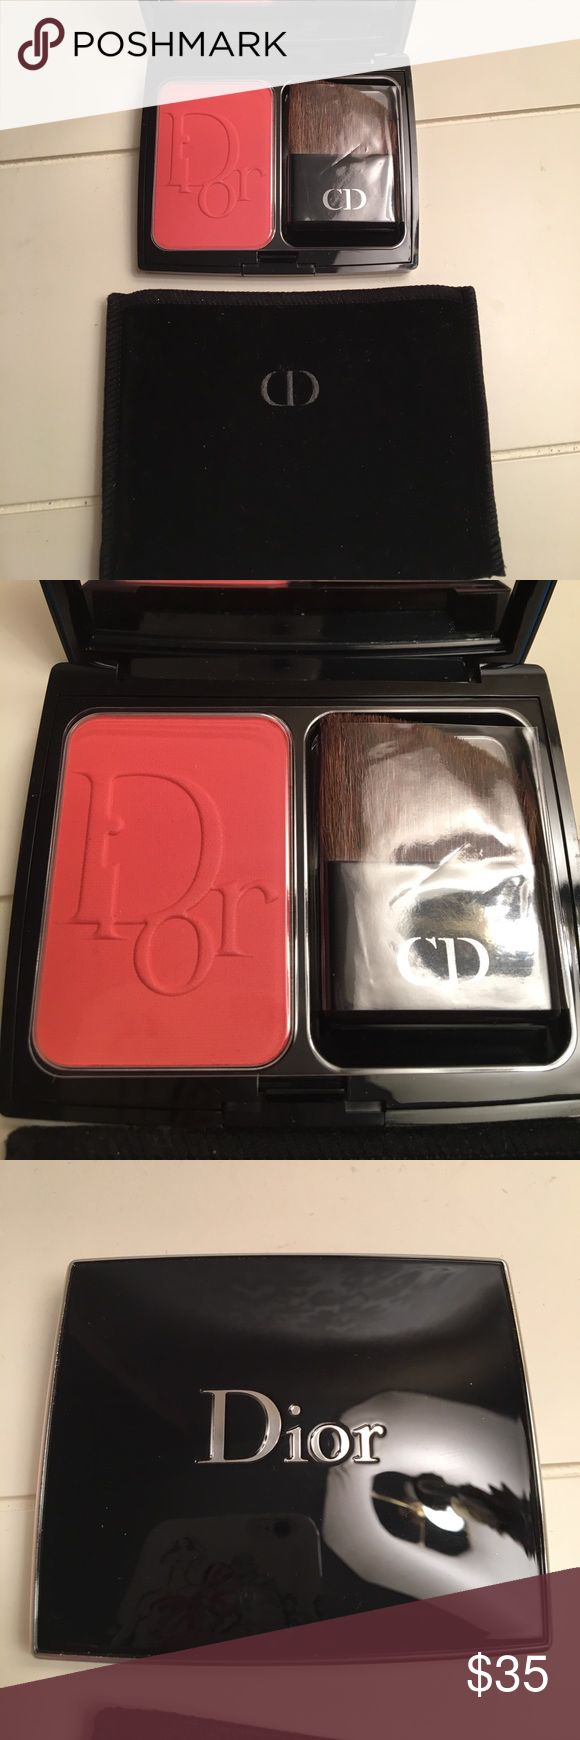 Dior Blush. Brand new condition. Never used. Color is new red. Plastic liner covering blush plus brush still has plastic sleeve on. Comes in velvet dust bag. I don't have the box. Dior Makeup Blush